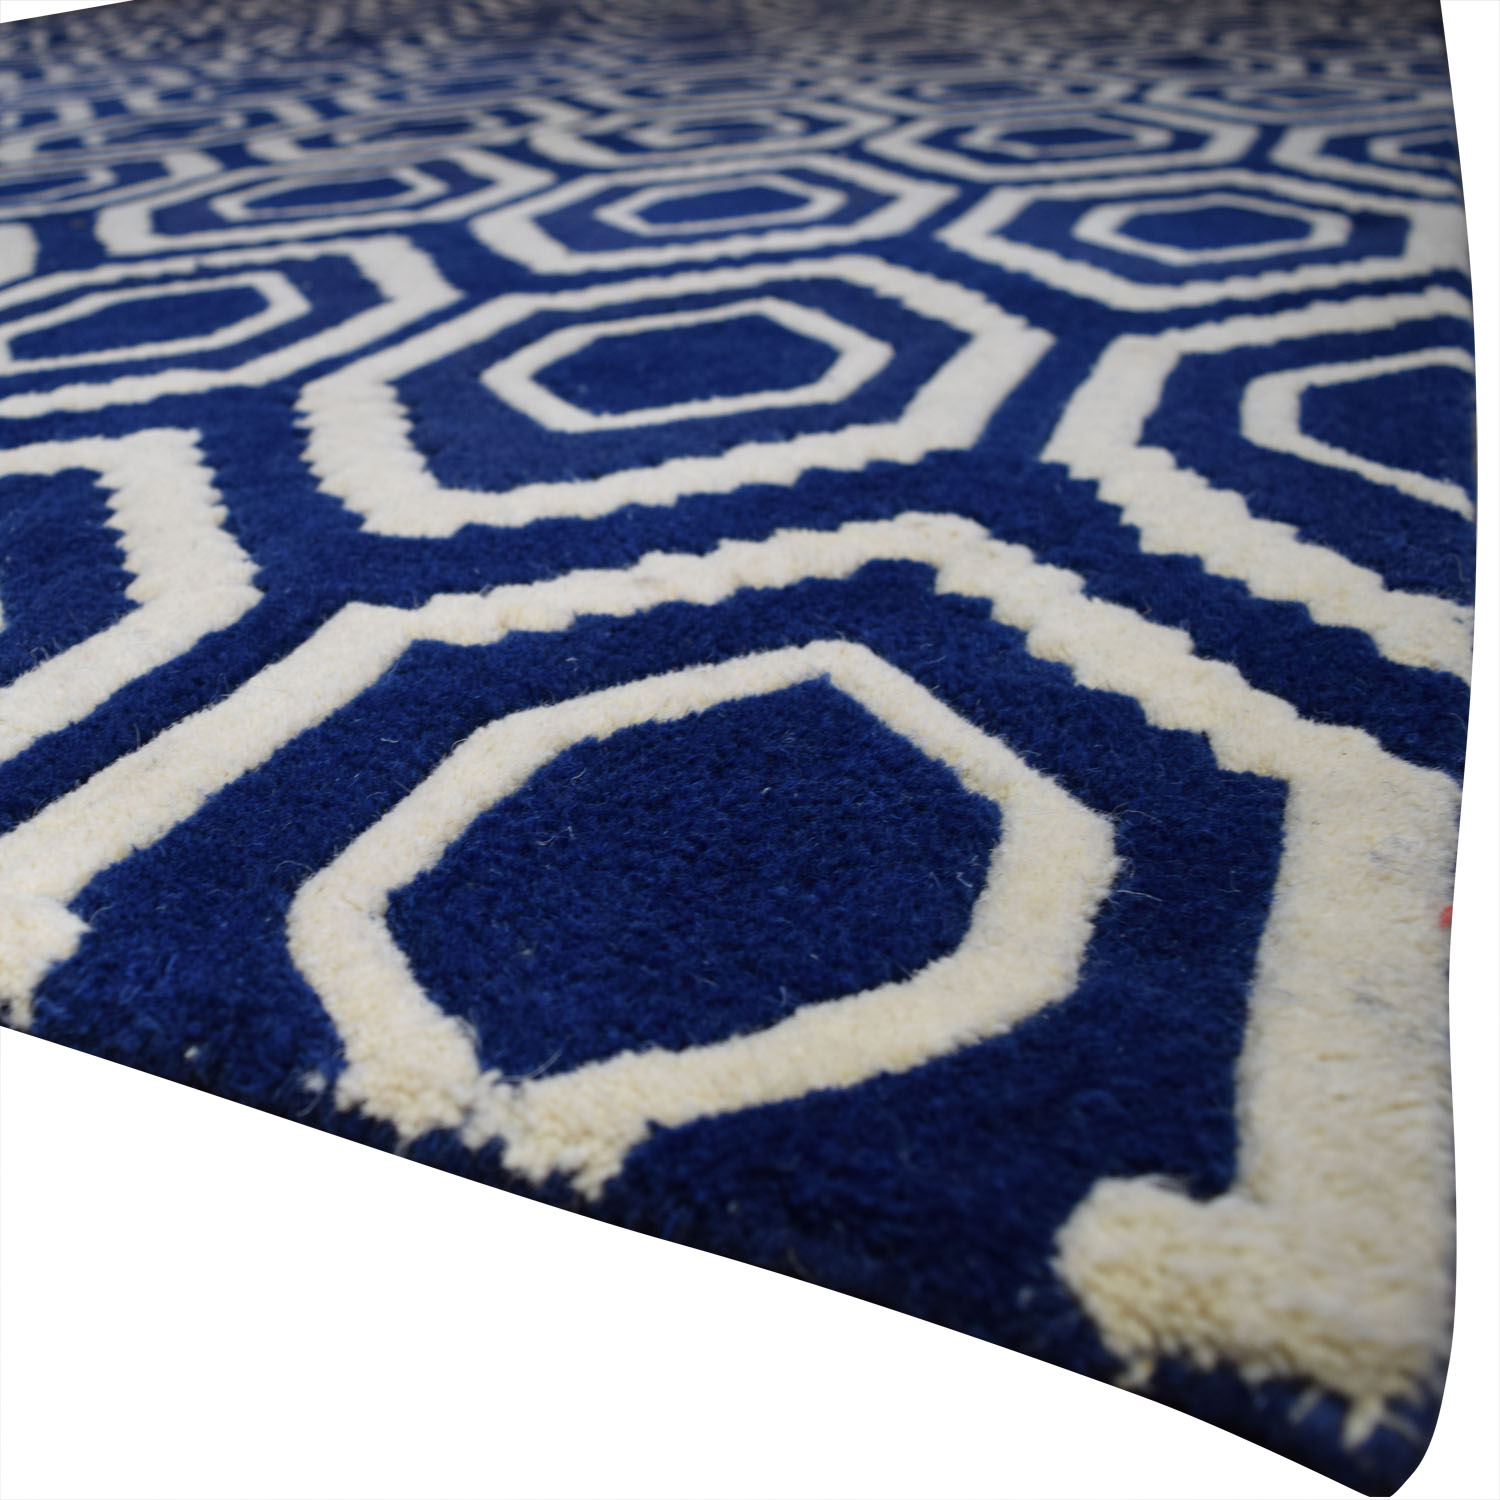 buy One Kings Lane One Kings Lane Blue and White Patterned Rug online